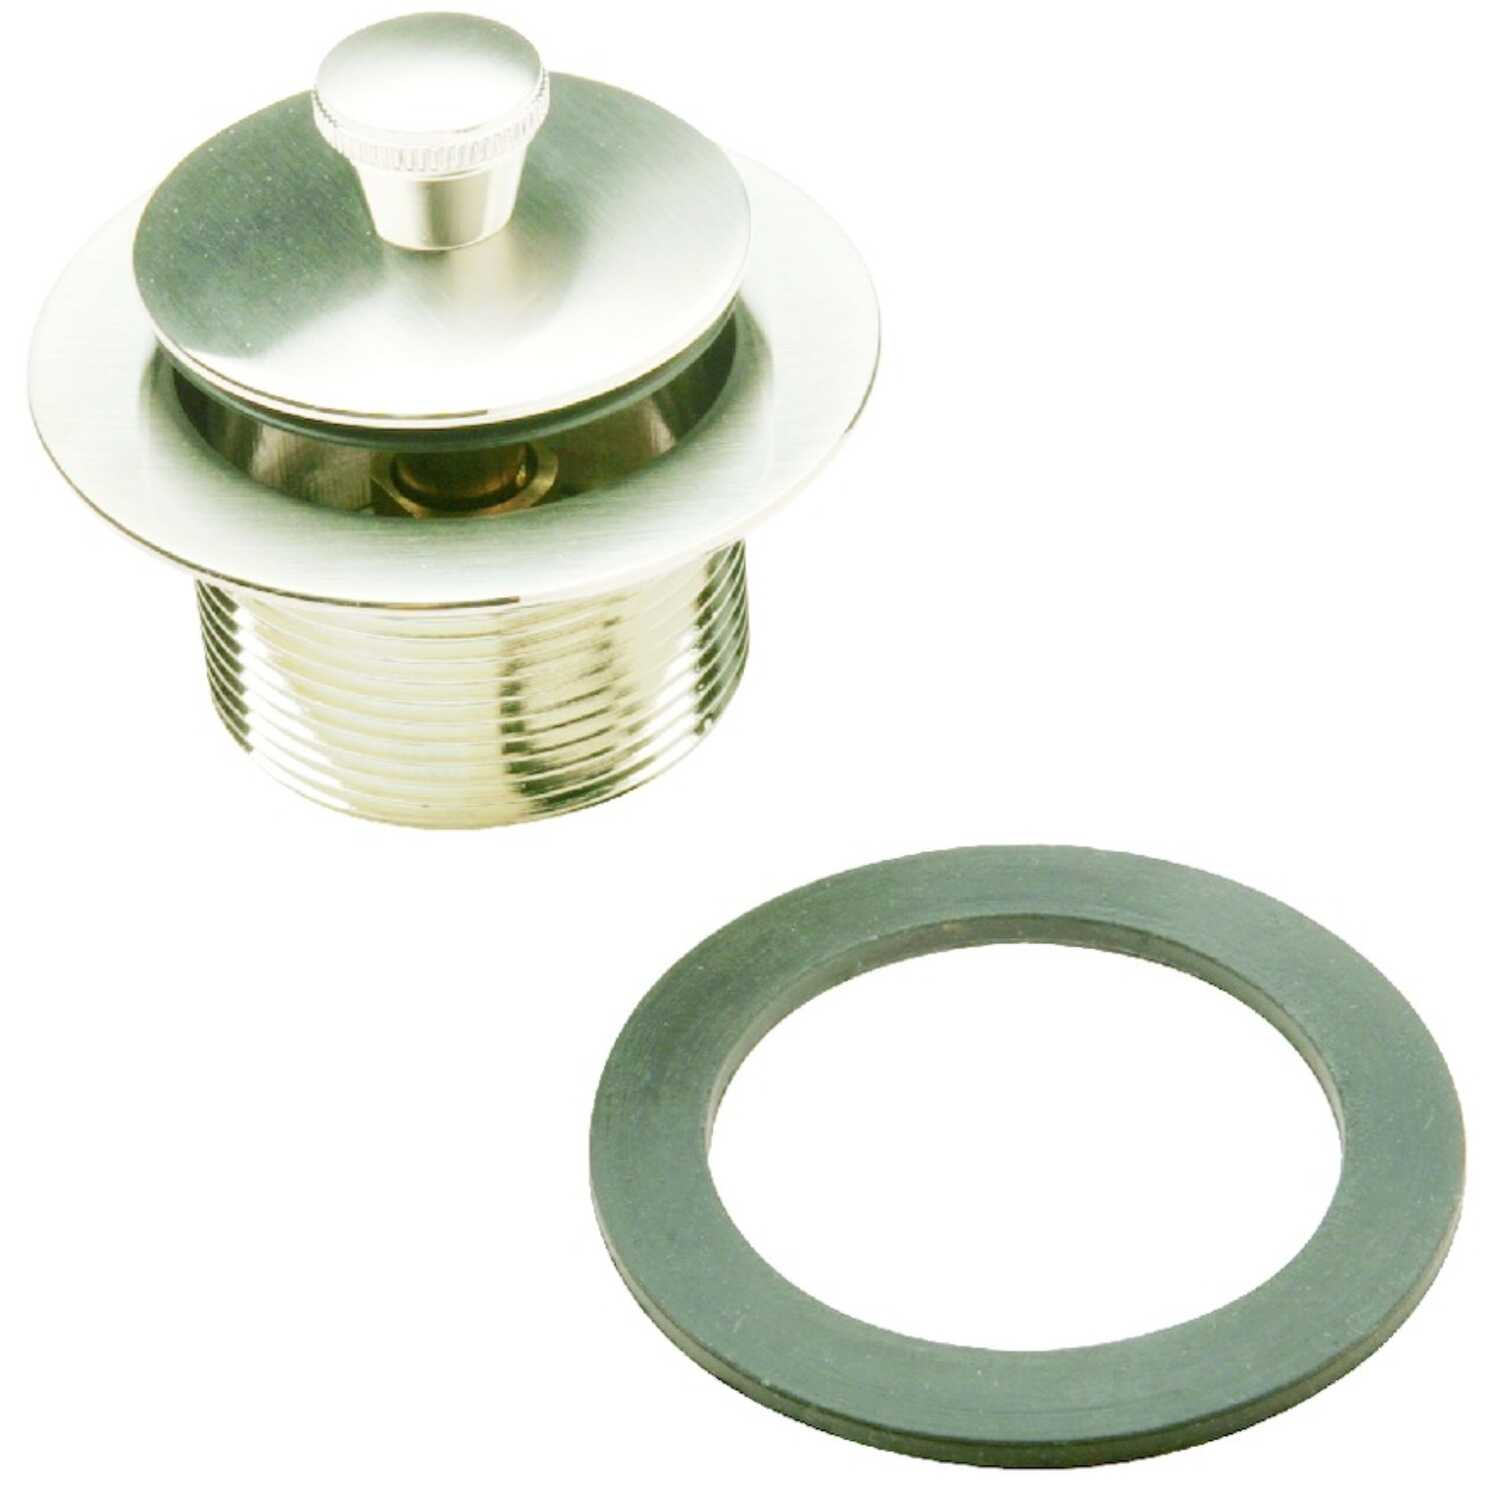 Ace  1-1/2 in. Dia. Roller Ball Assembly  Brushed Nickel  Nickel